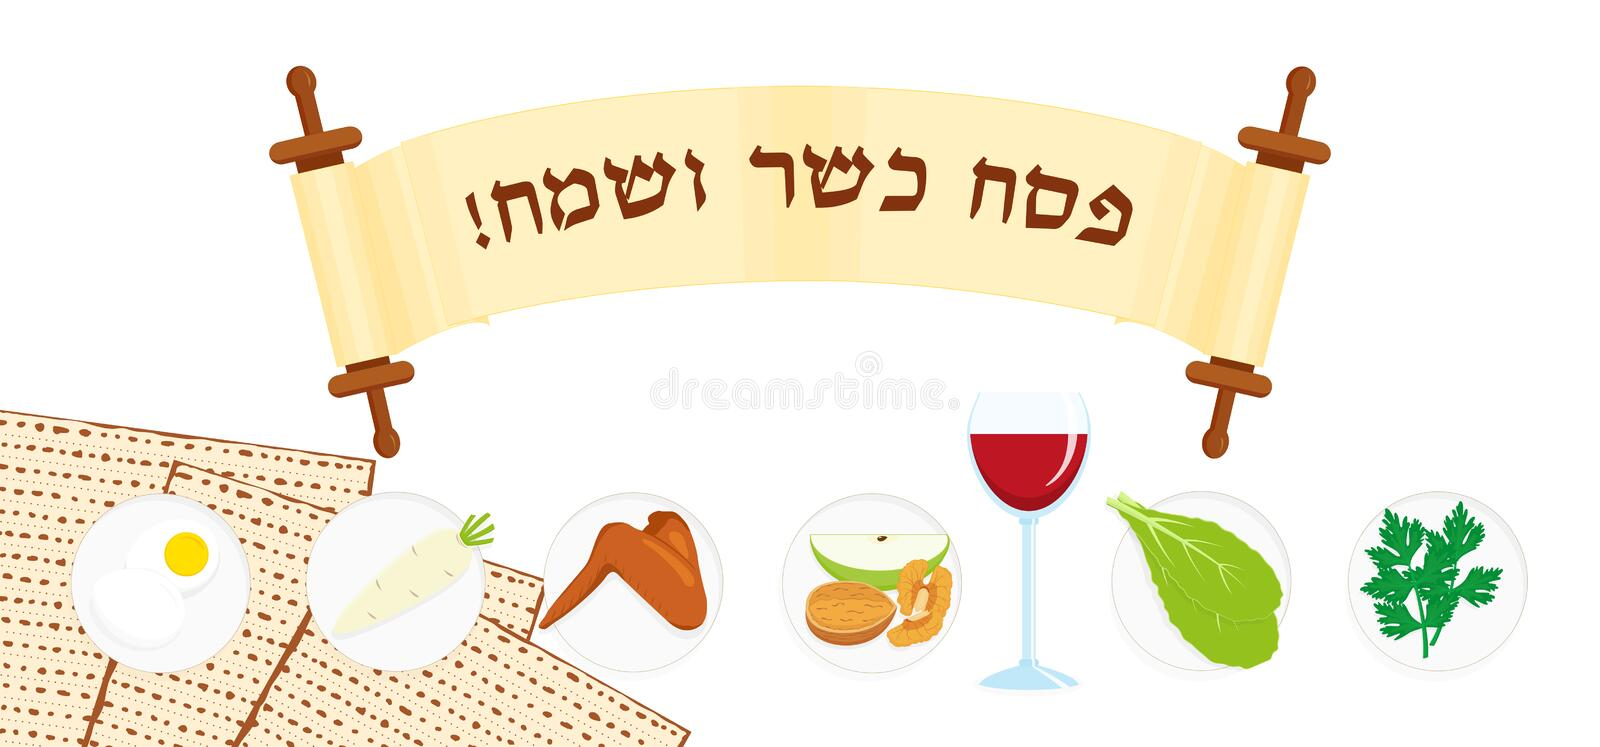 Jewish holiday of Passover, banner with scroll. Jewish holiday of Passover, banner with matzah - unleavened bread, holiday symbolic foods, symbols of Pesach vector illustration